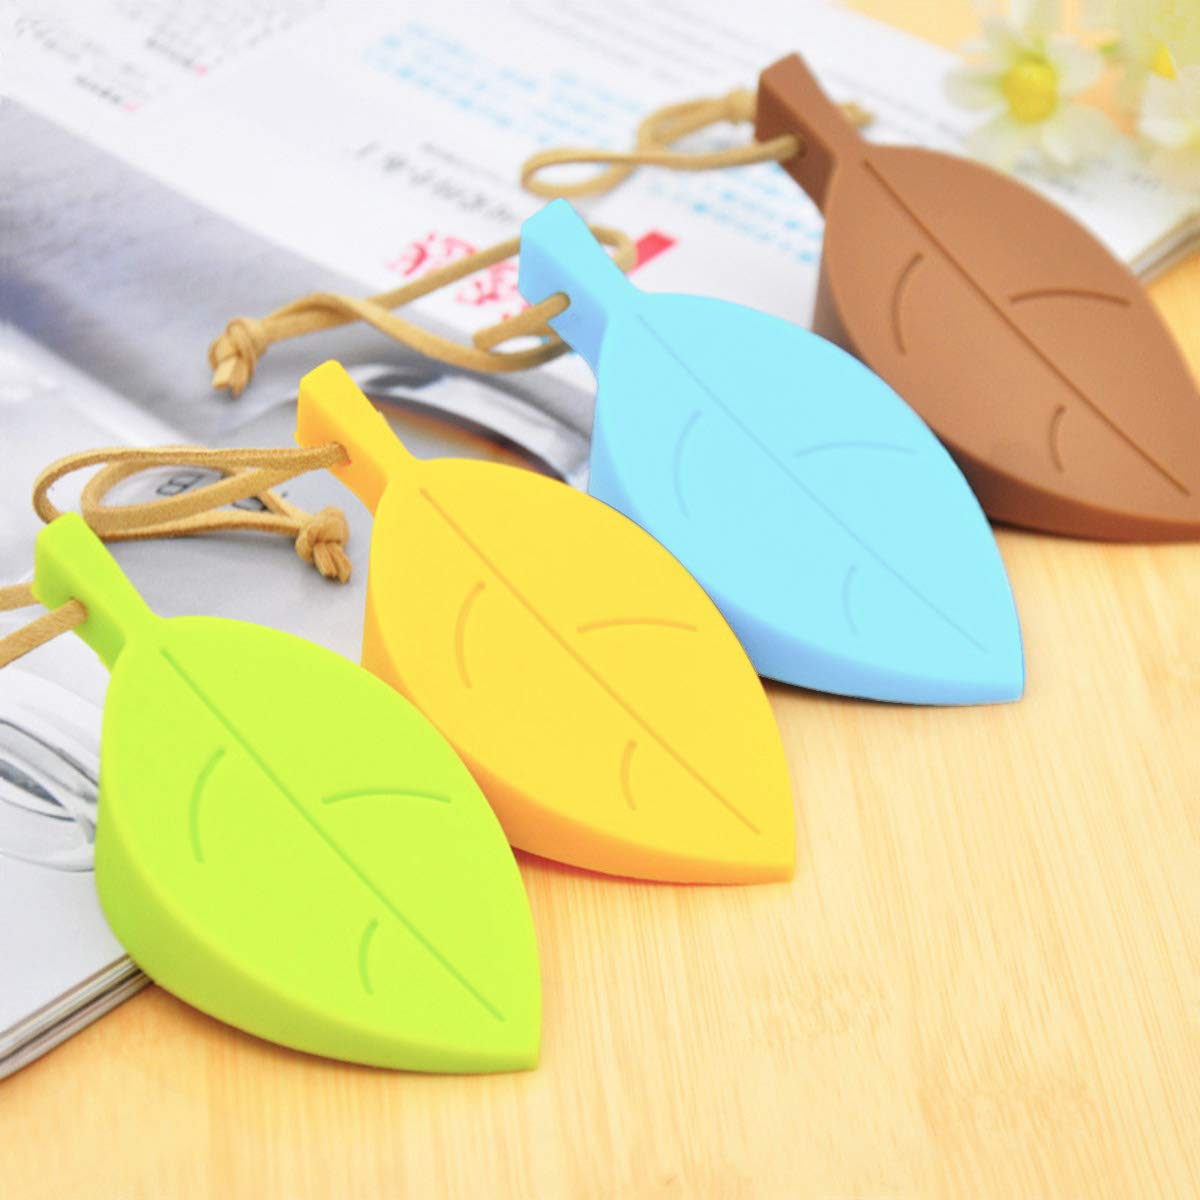 Cute Leaf Door Holders Works on All Surfaces Baby Finger Pinch Guard Made of Soft Durable Foam,4 Pack Leaf Door Stop Wedge and 5 Pack C-Shape Buffer Home Door Stopper Baby Finger Protector